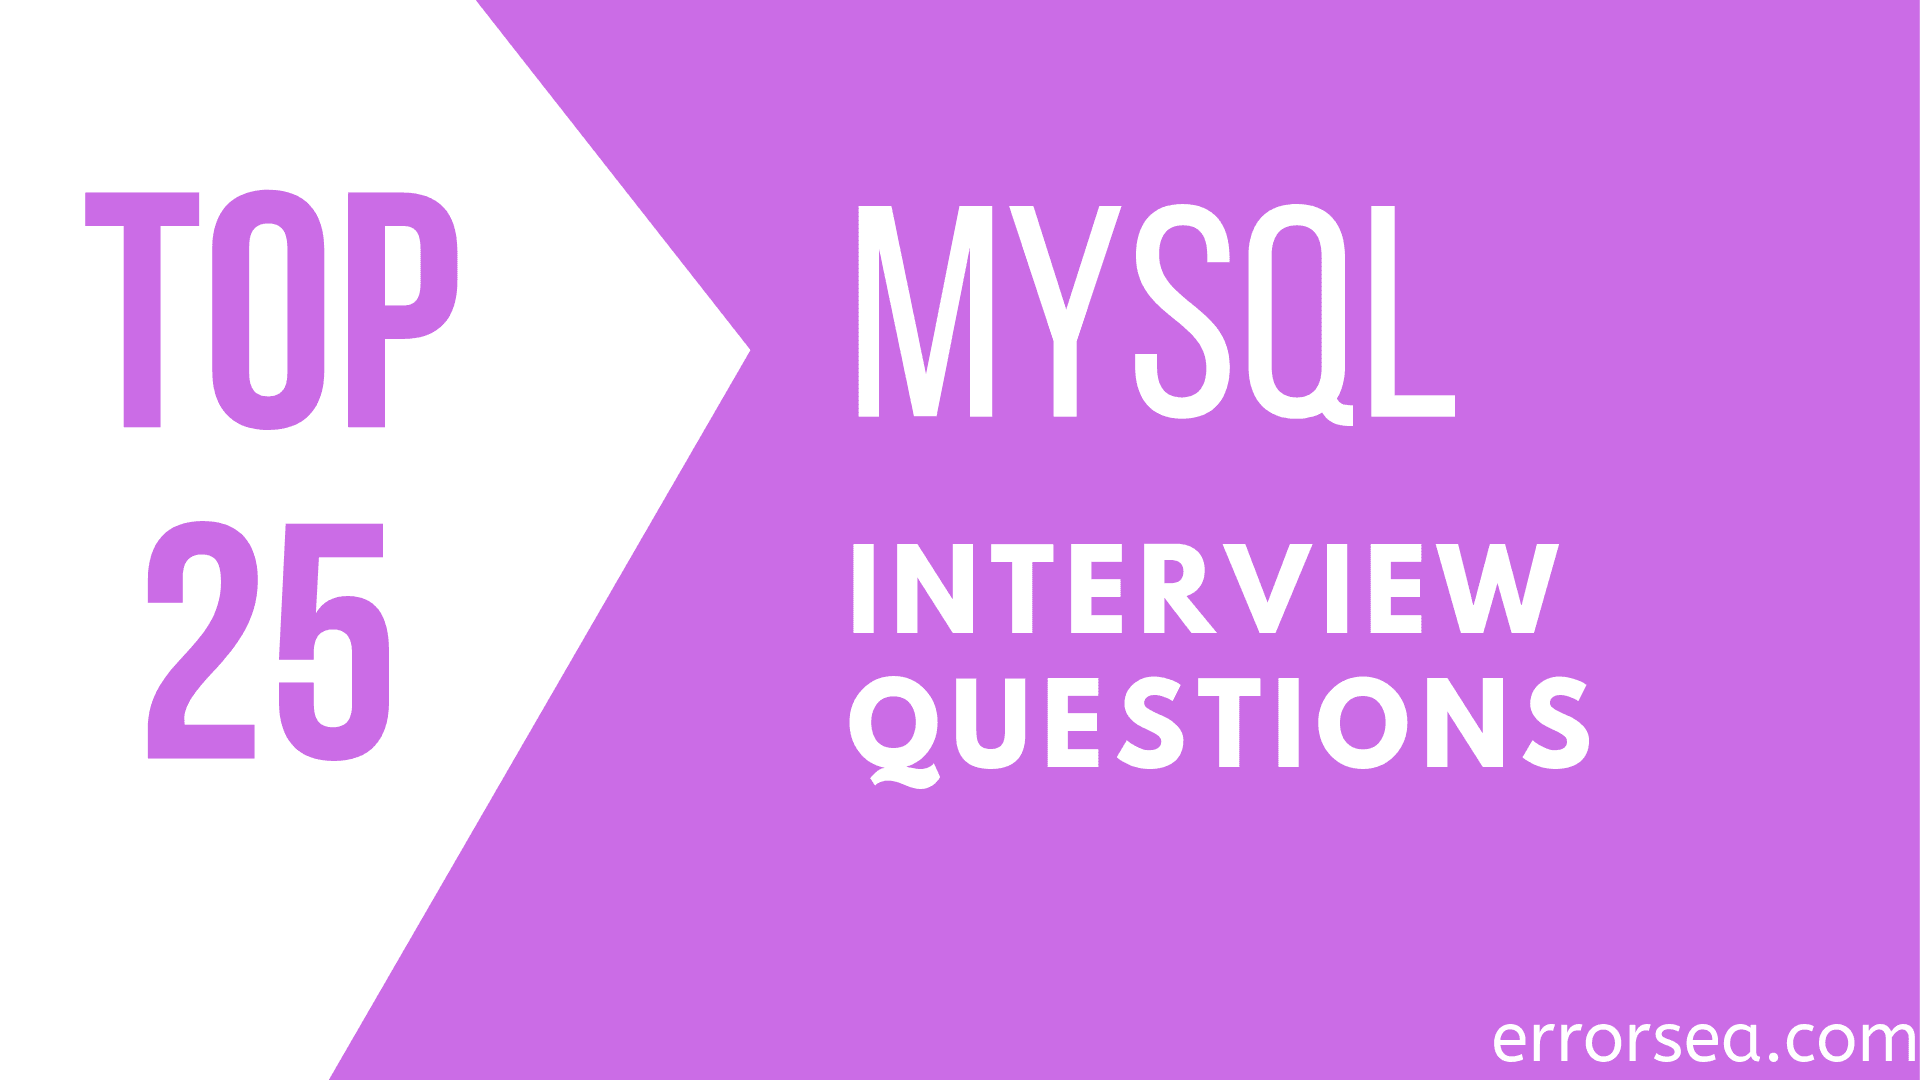 Top 25 MySQL Interview Questions